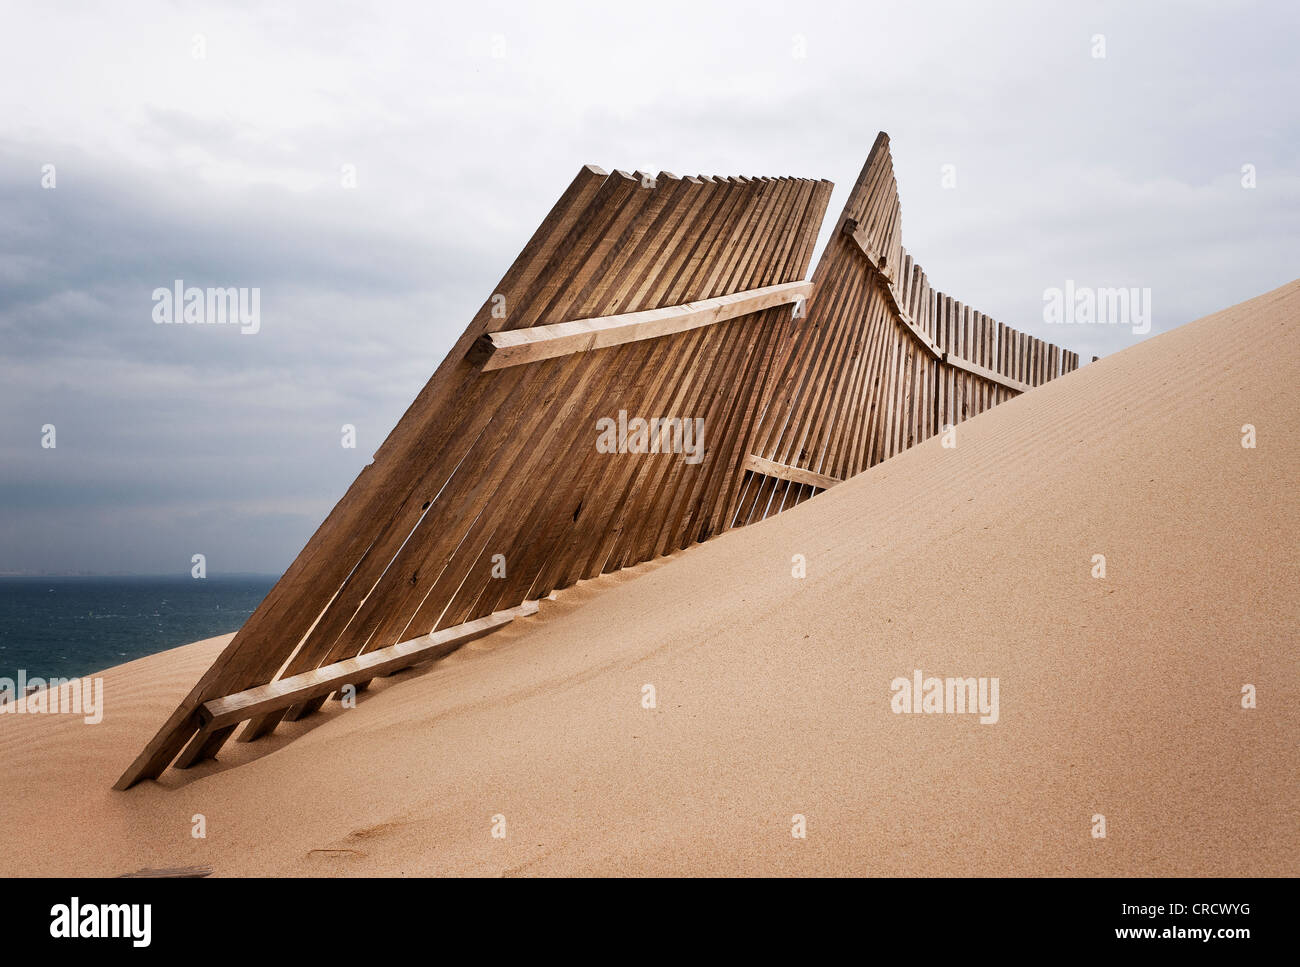 Wooden fence protecting the advance of sand dunes. - Stock Image